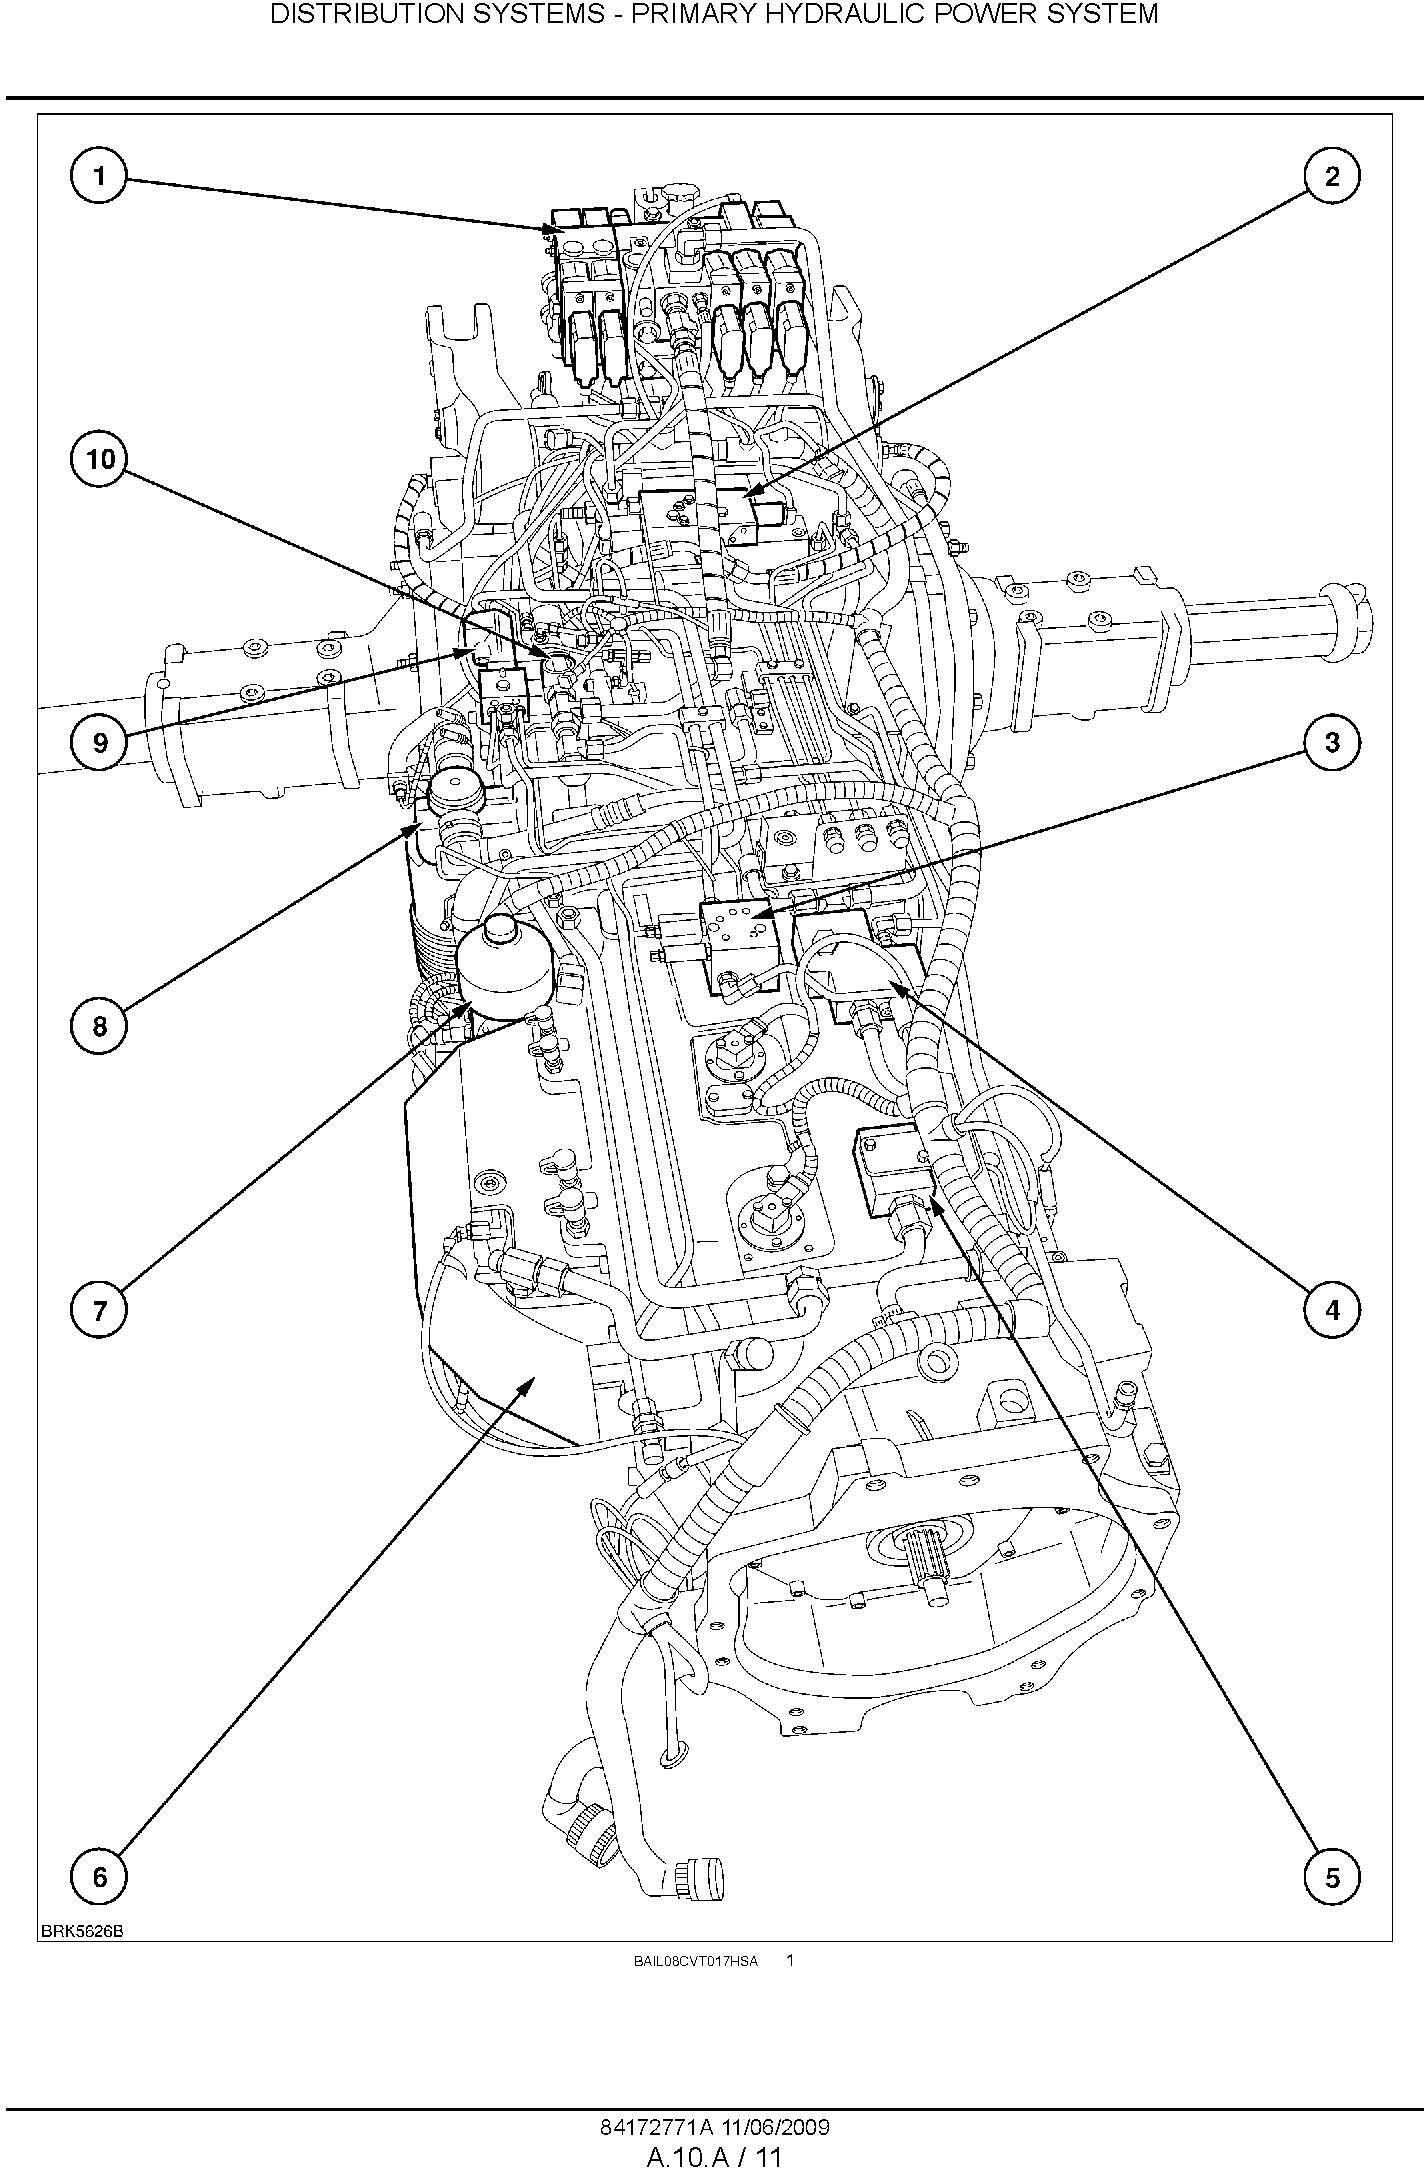 New Holland T7030, T7040, T7050, T7060, T7070 Auto Command CVT Tractor Service Manual - 1